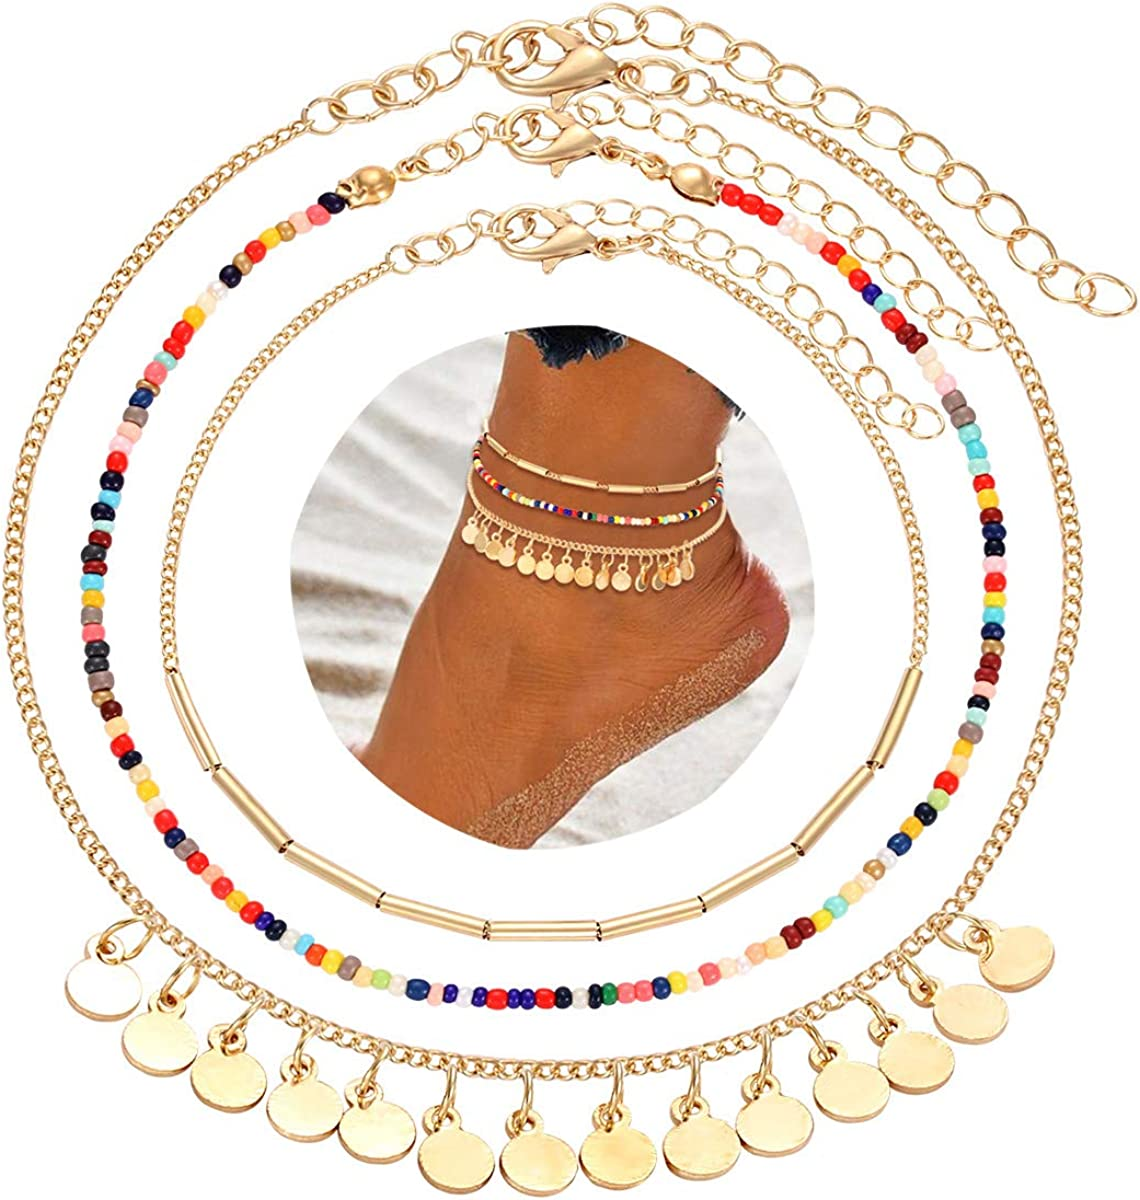 CEALXHENY Anklets for Women Multicolored Bead Anklets Bohemia Metal Bar Sequins Ankle Bracelets Summer Beach Foot Jewelry Set for Girls